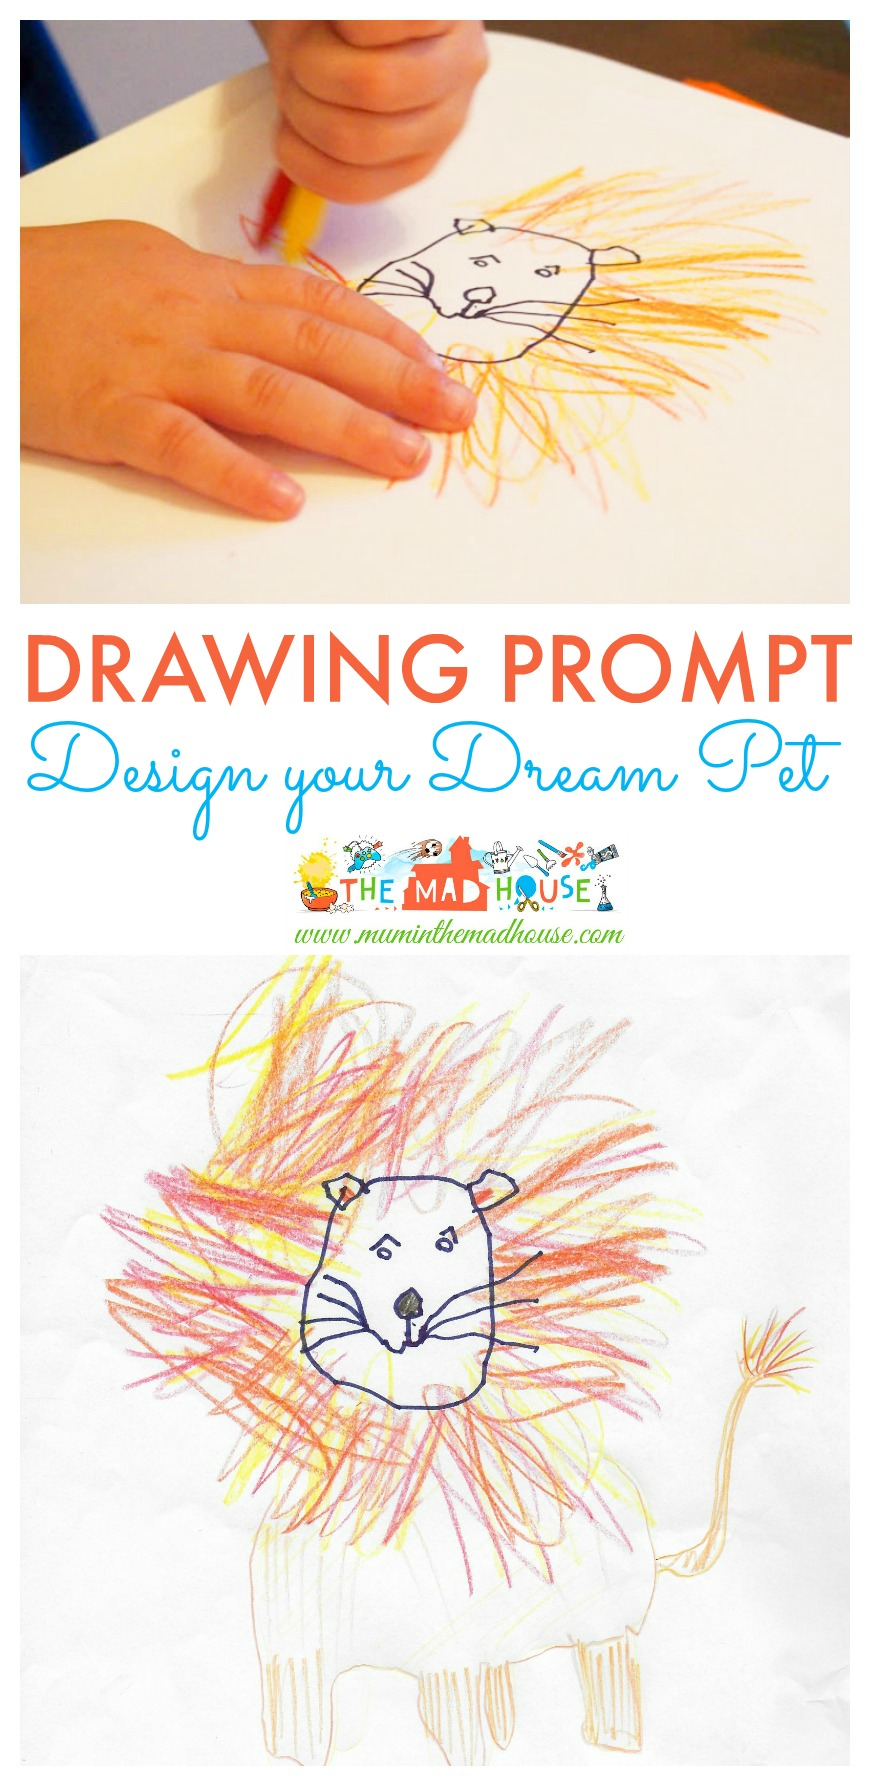 Design a Dream Pet - A simple drawing prompt - Mum In The